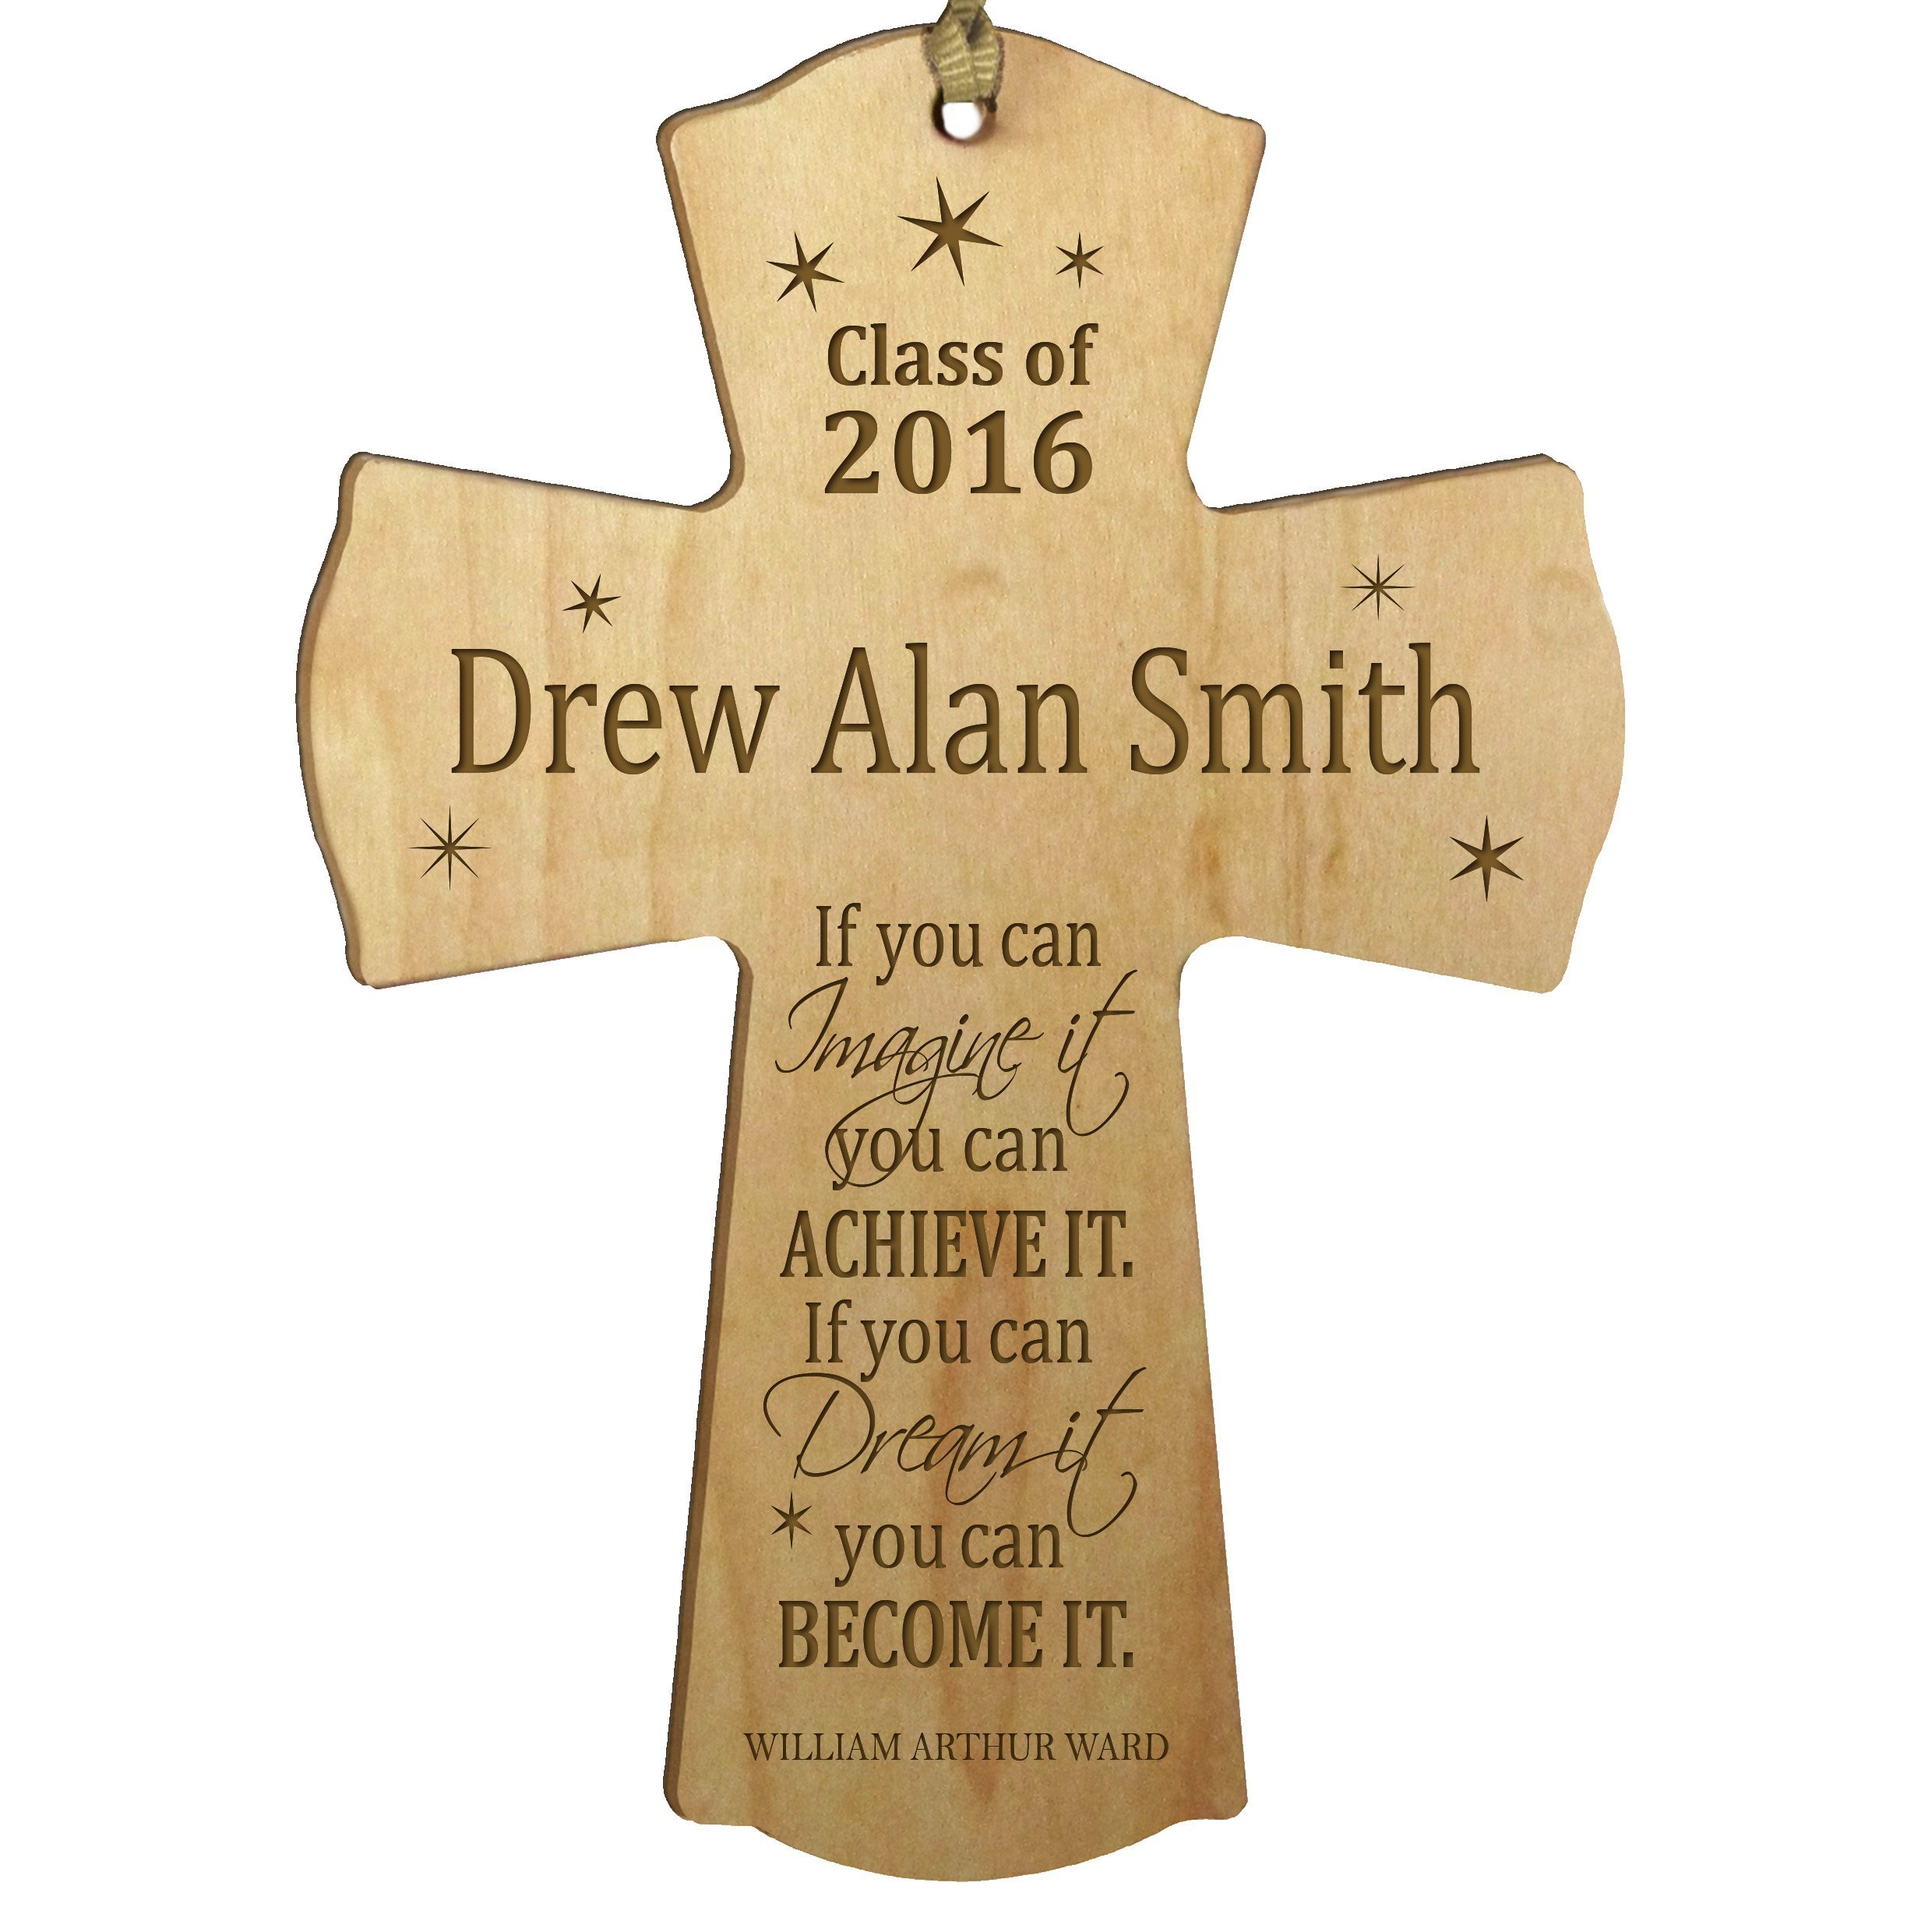 LifeSong Milestones Personalized Wall Cross Graduation gifts for If you can IMAGINE it you can ACHIEVE IT if you can Dream it you can BECOME IT (4.5'' x 6'', Maple)